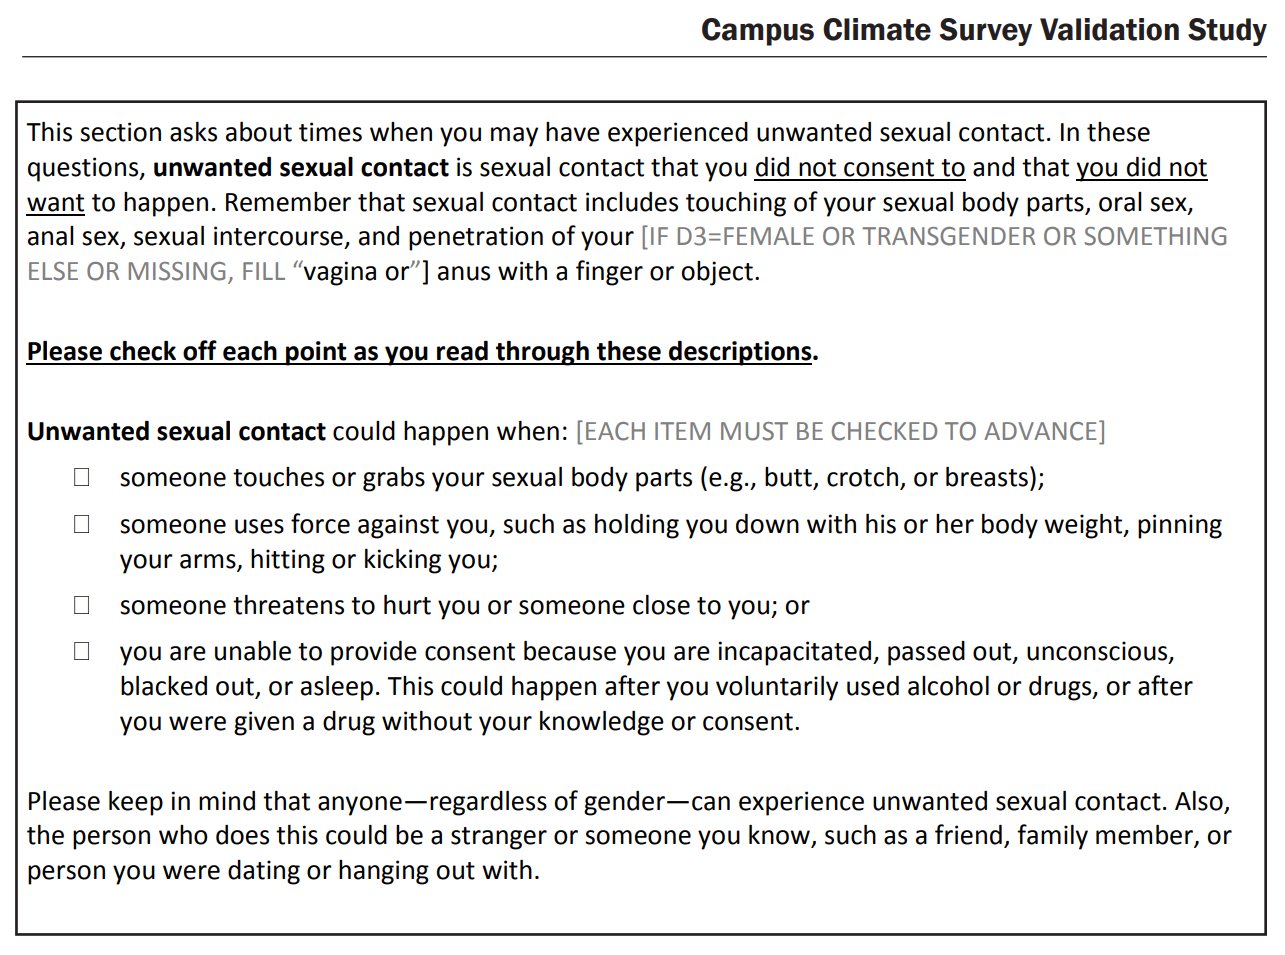 Nature of Unwanted Sexual Contact CCSVS.PNG